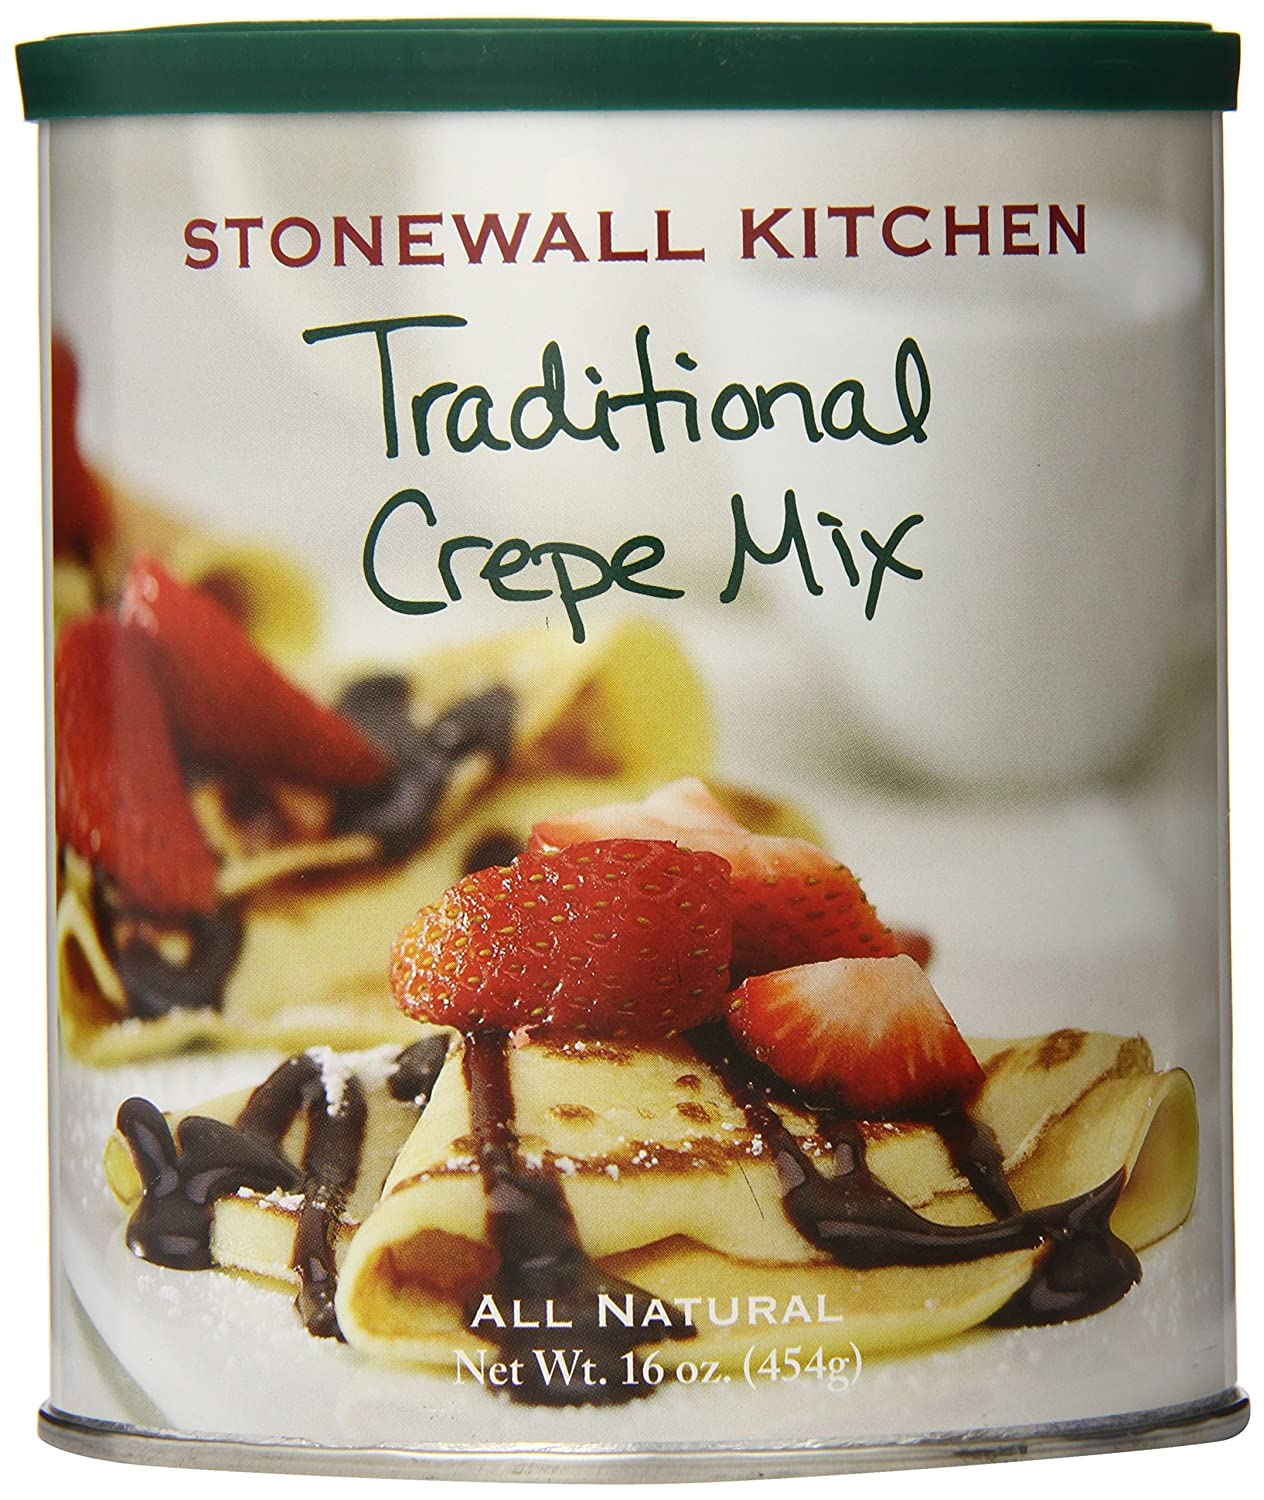 Stonewall Kitchen New Products